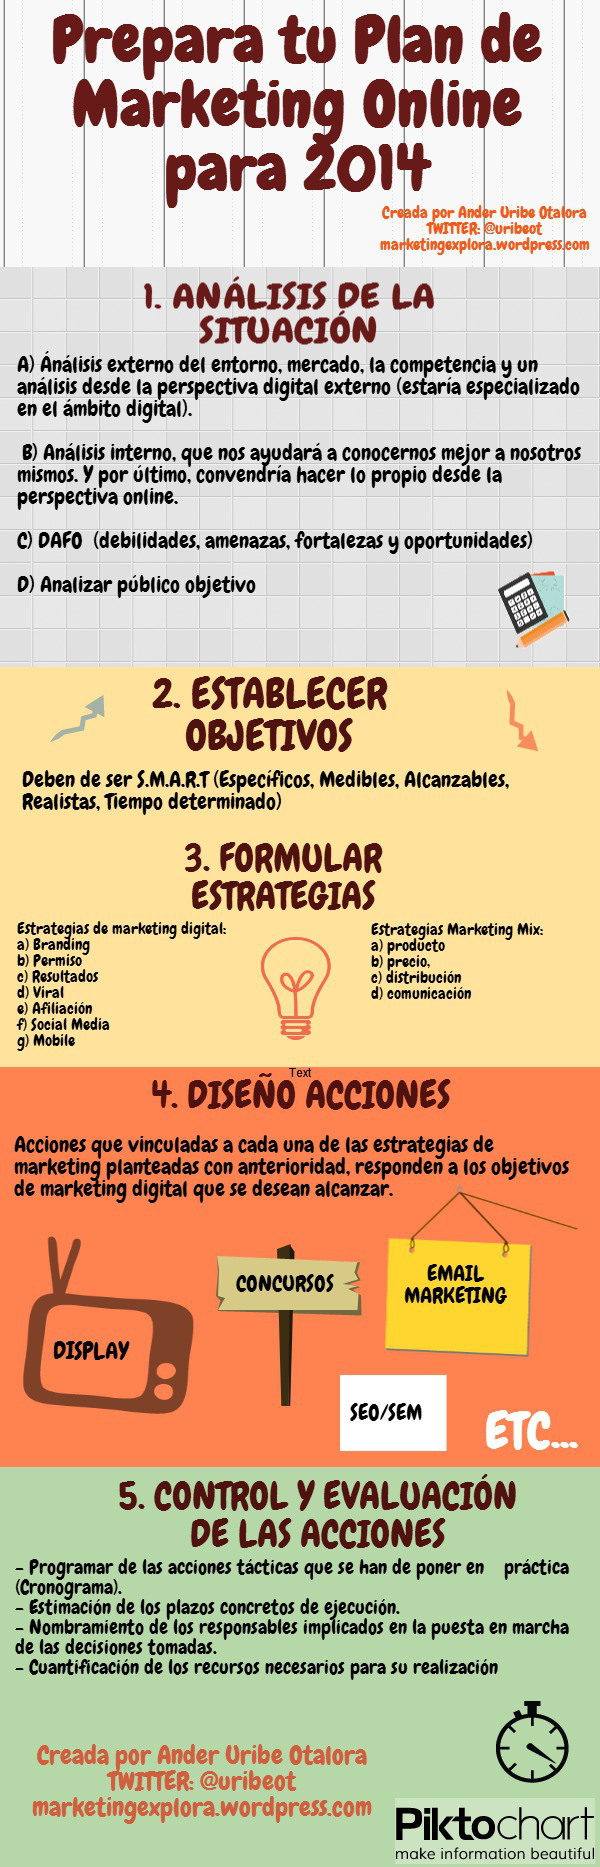 Cómo preparar tu Plan de Marketing online